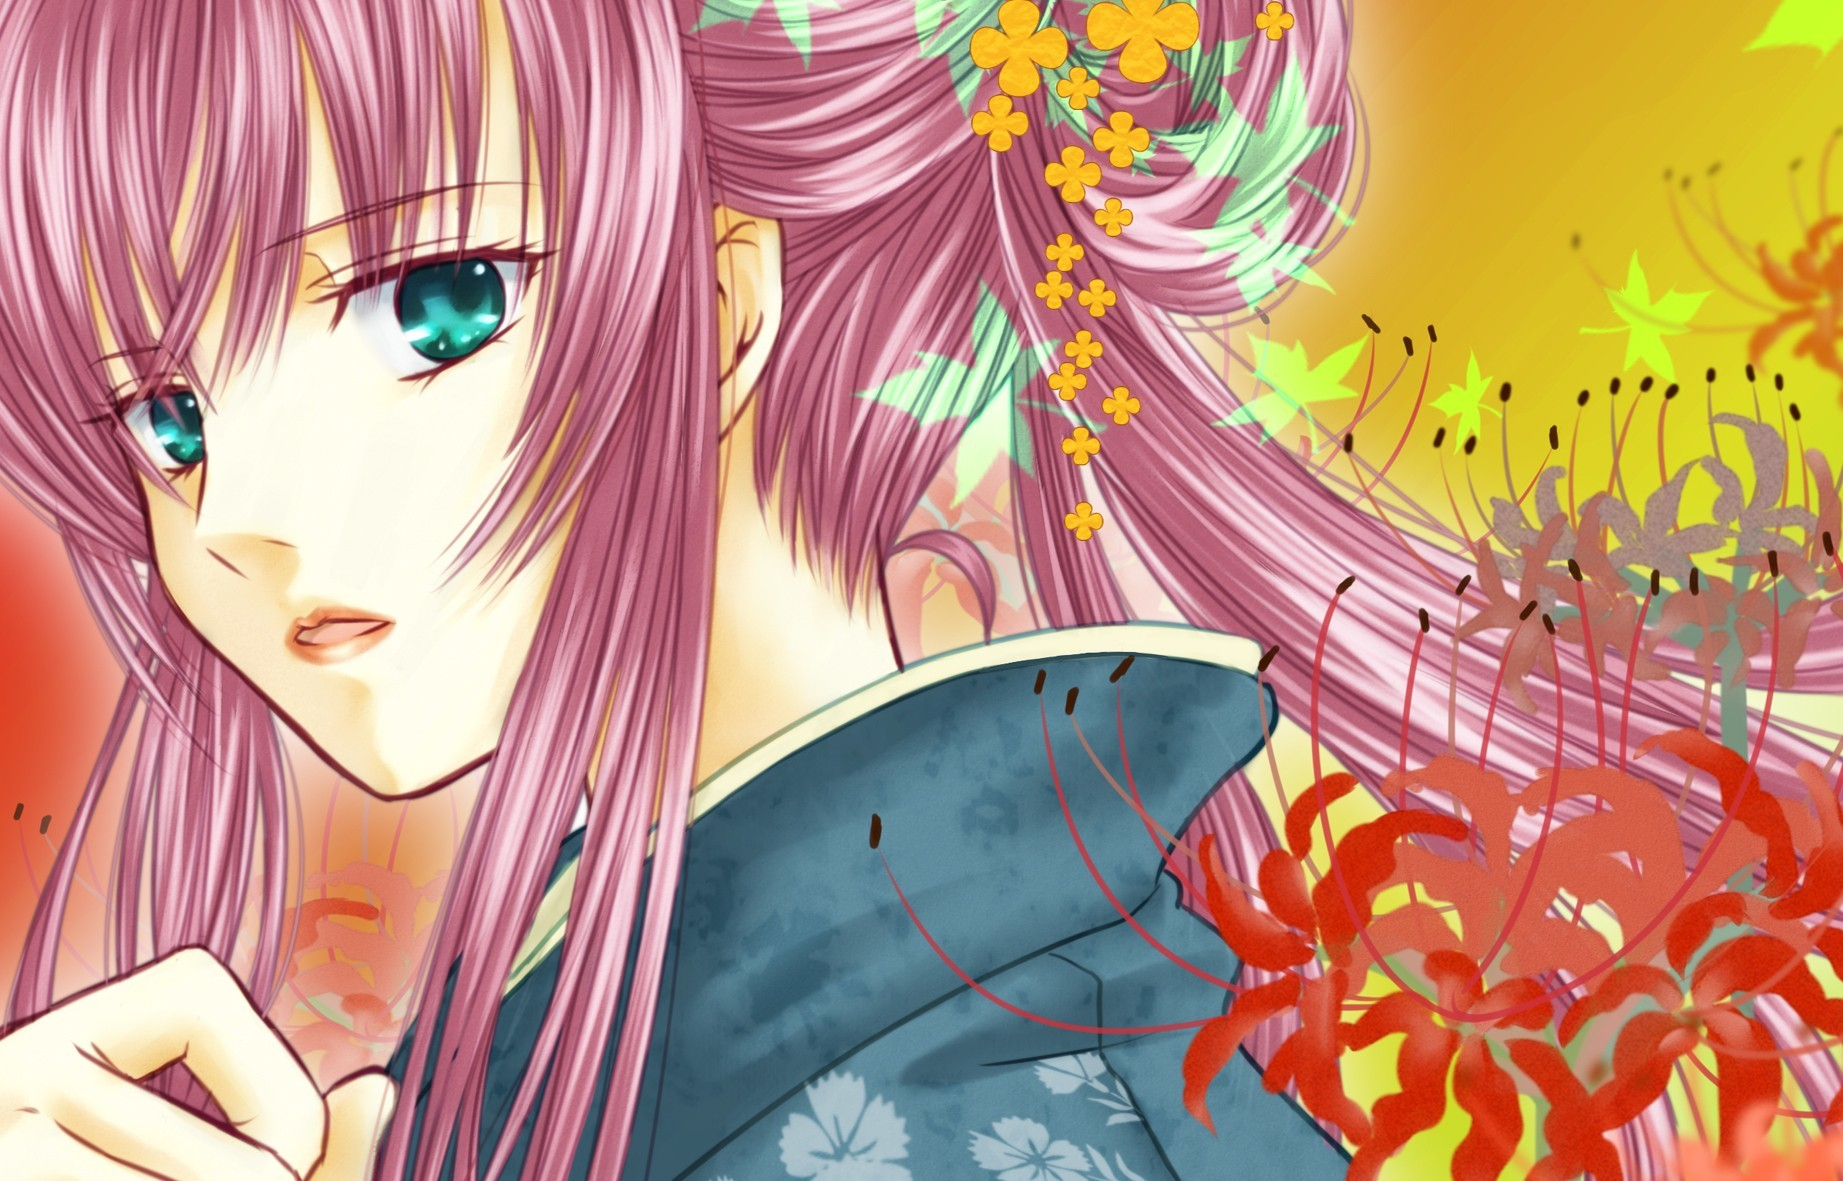 vocaloid megurine luka Japanese HD Wallpaper